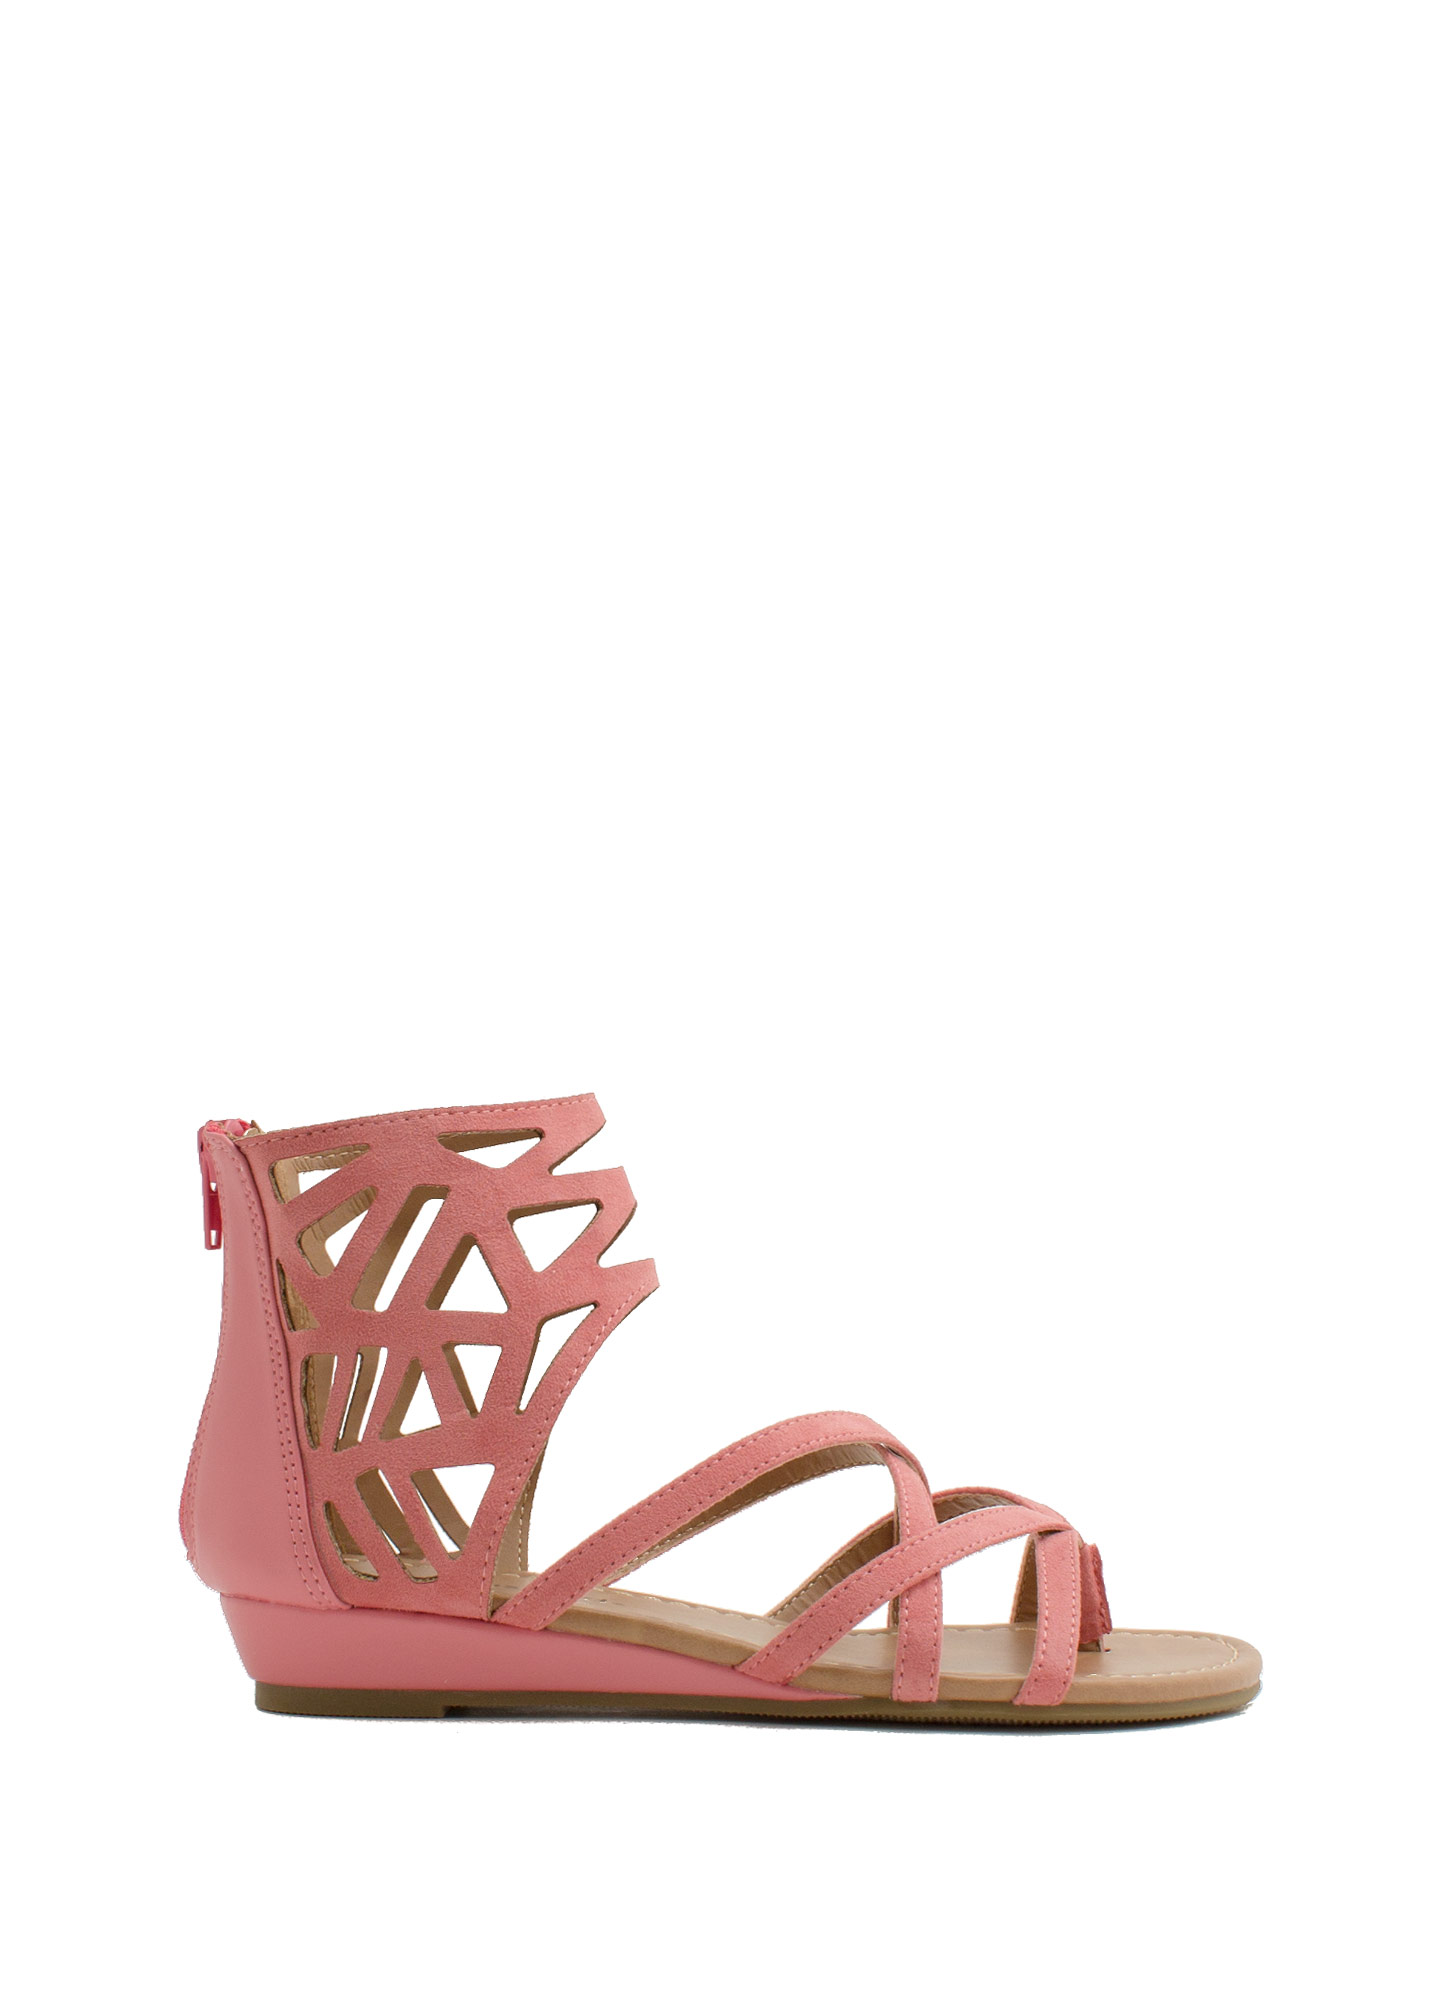 Too Haute Faux Leather Cut-Out Sandals SALMON